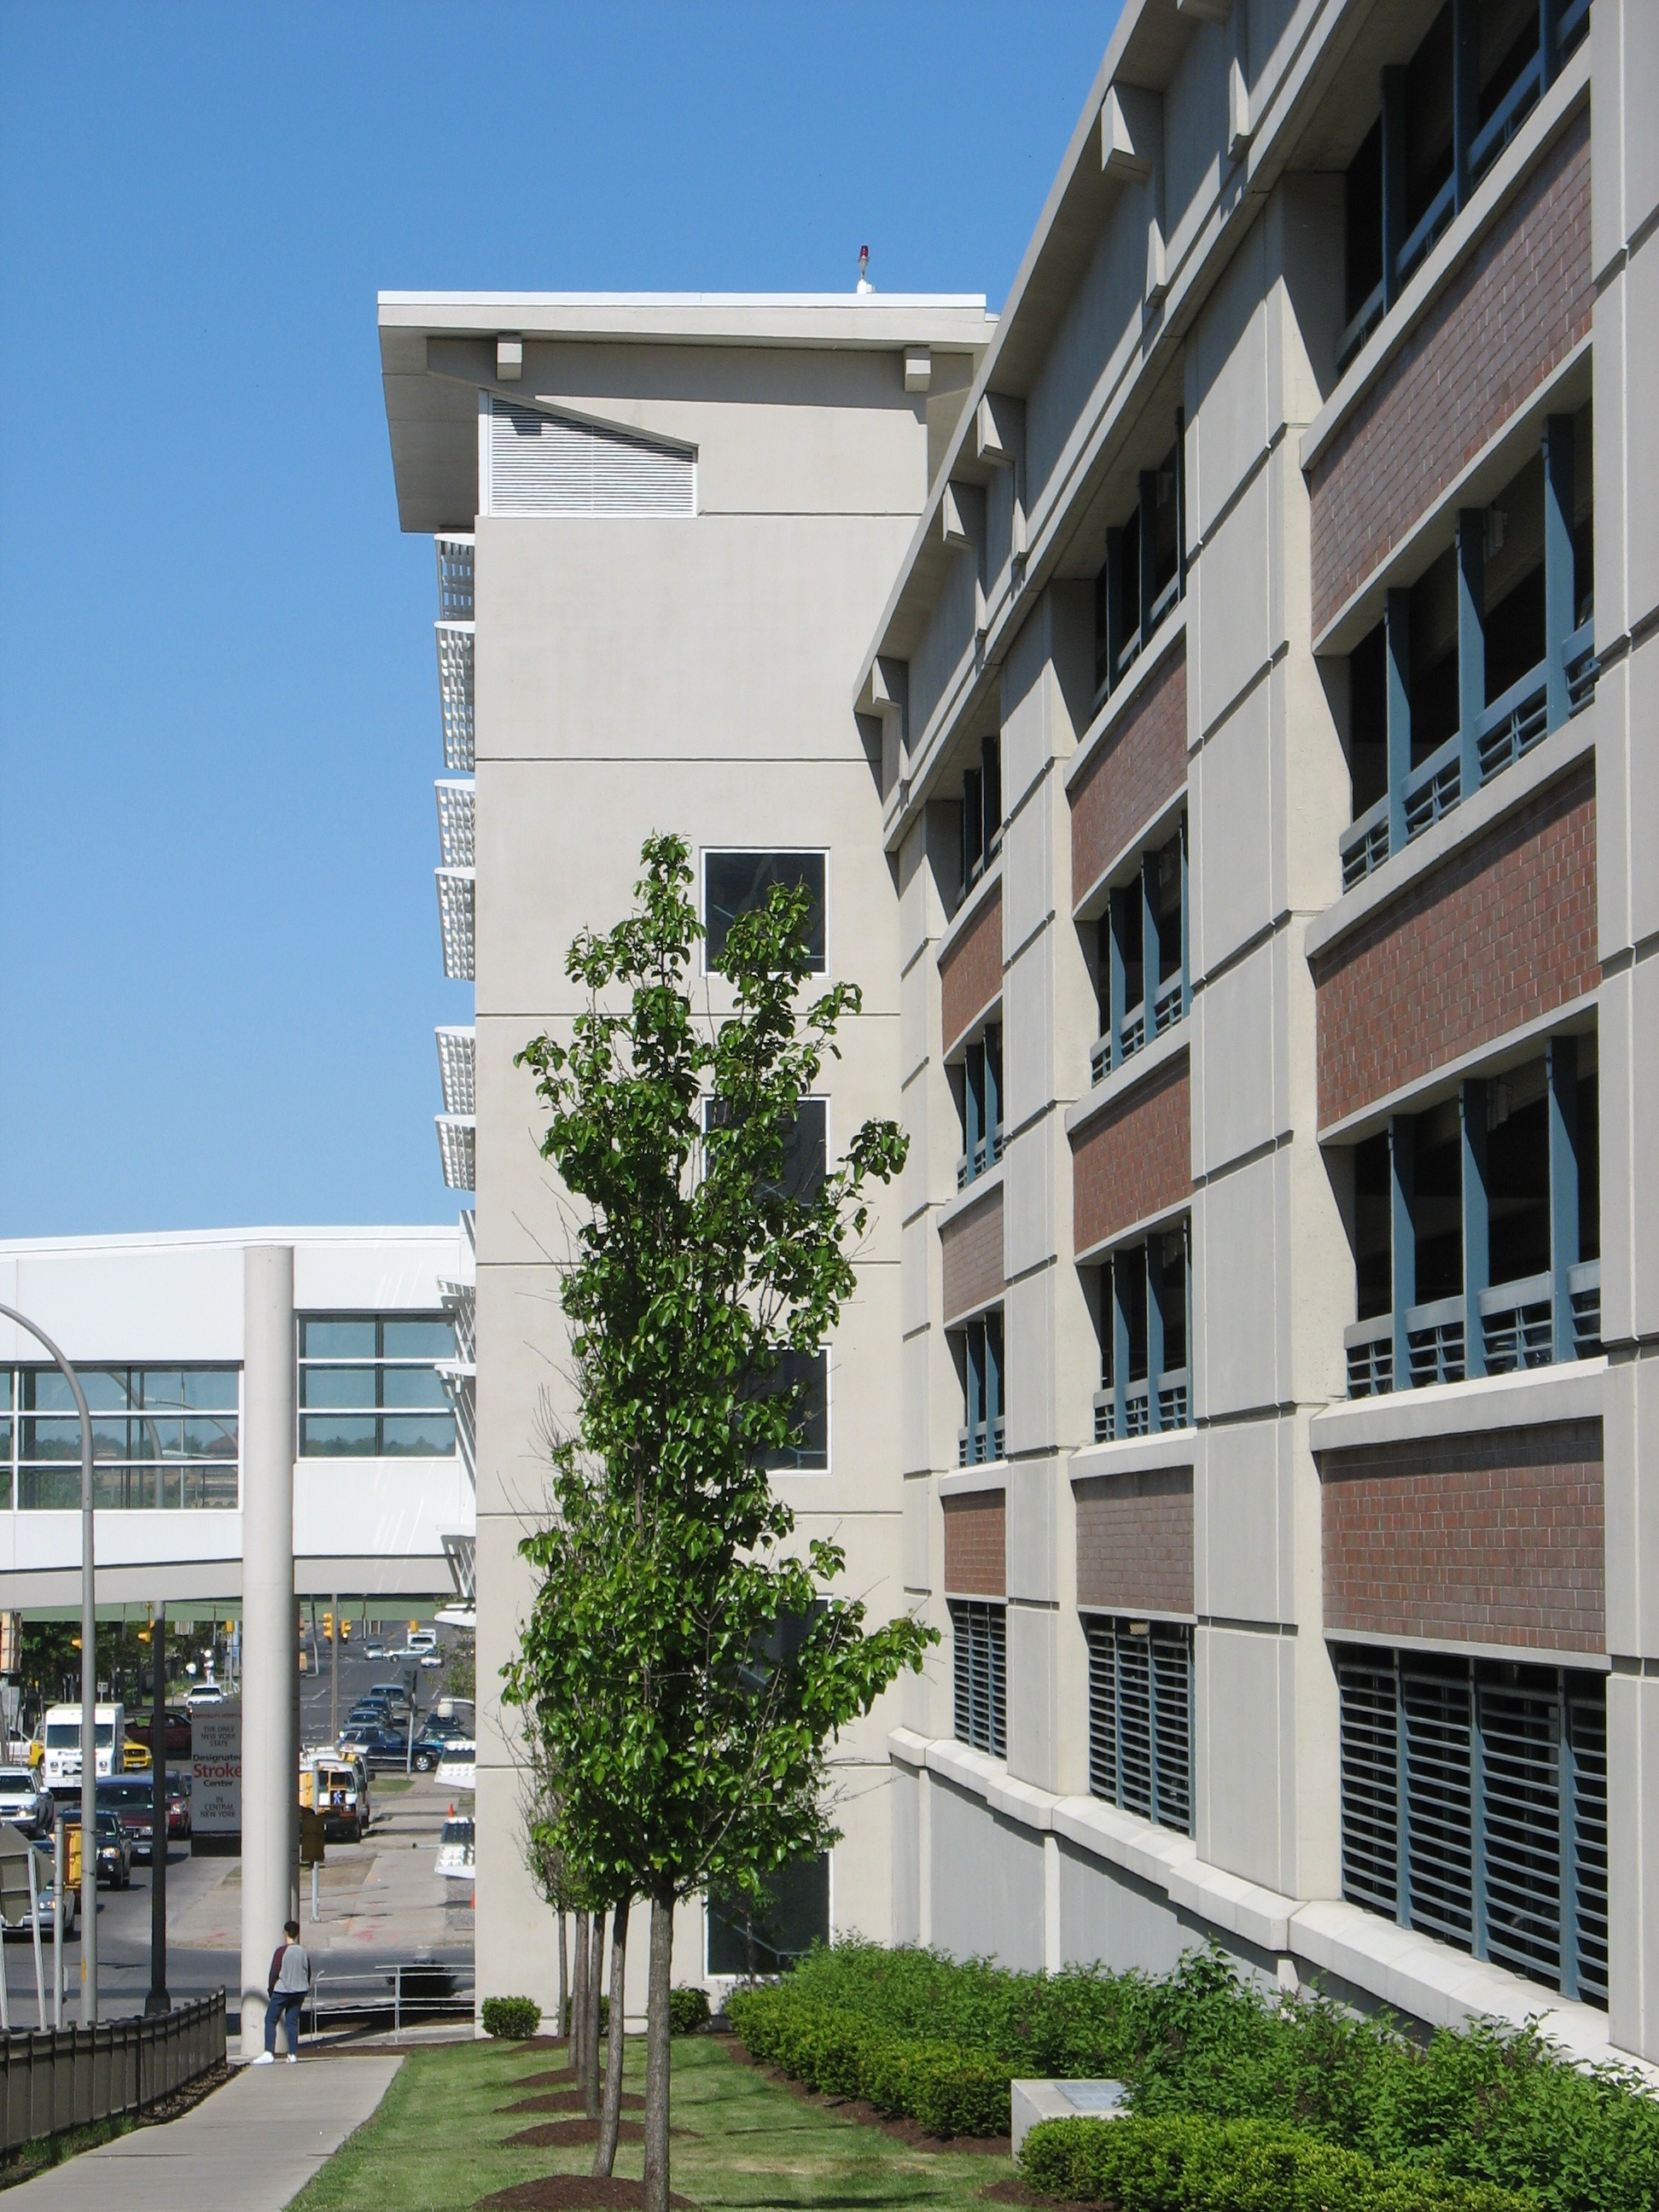 John P. Stopen SUNY Upstate Parking Garage exterior